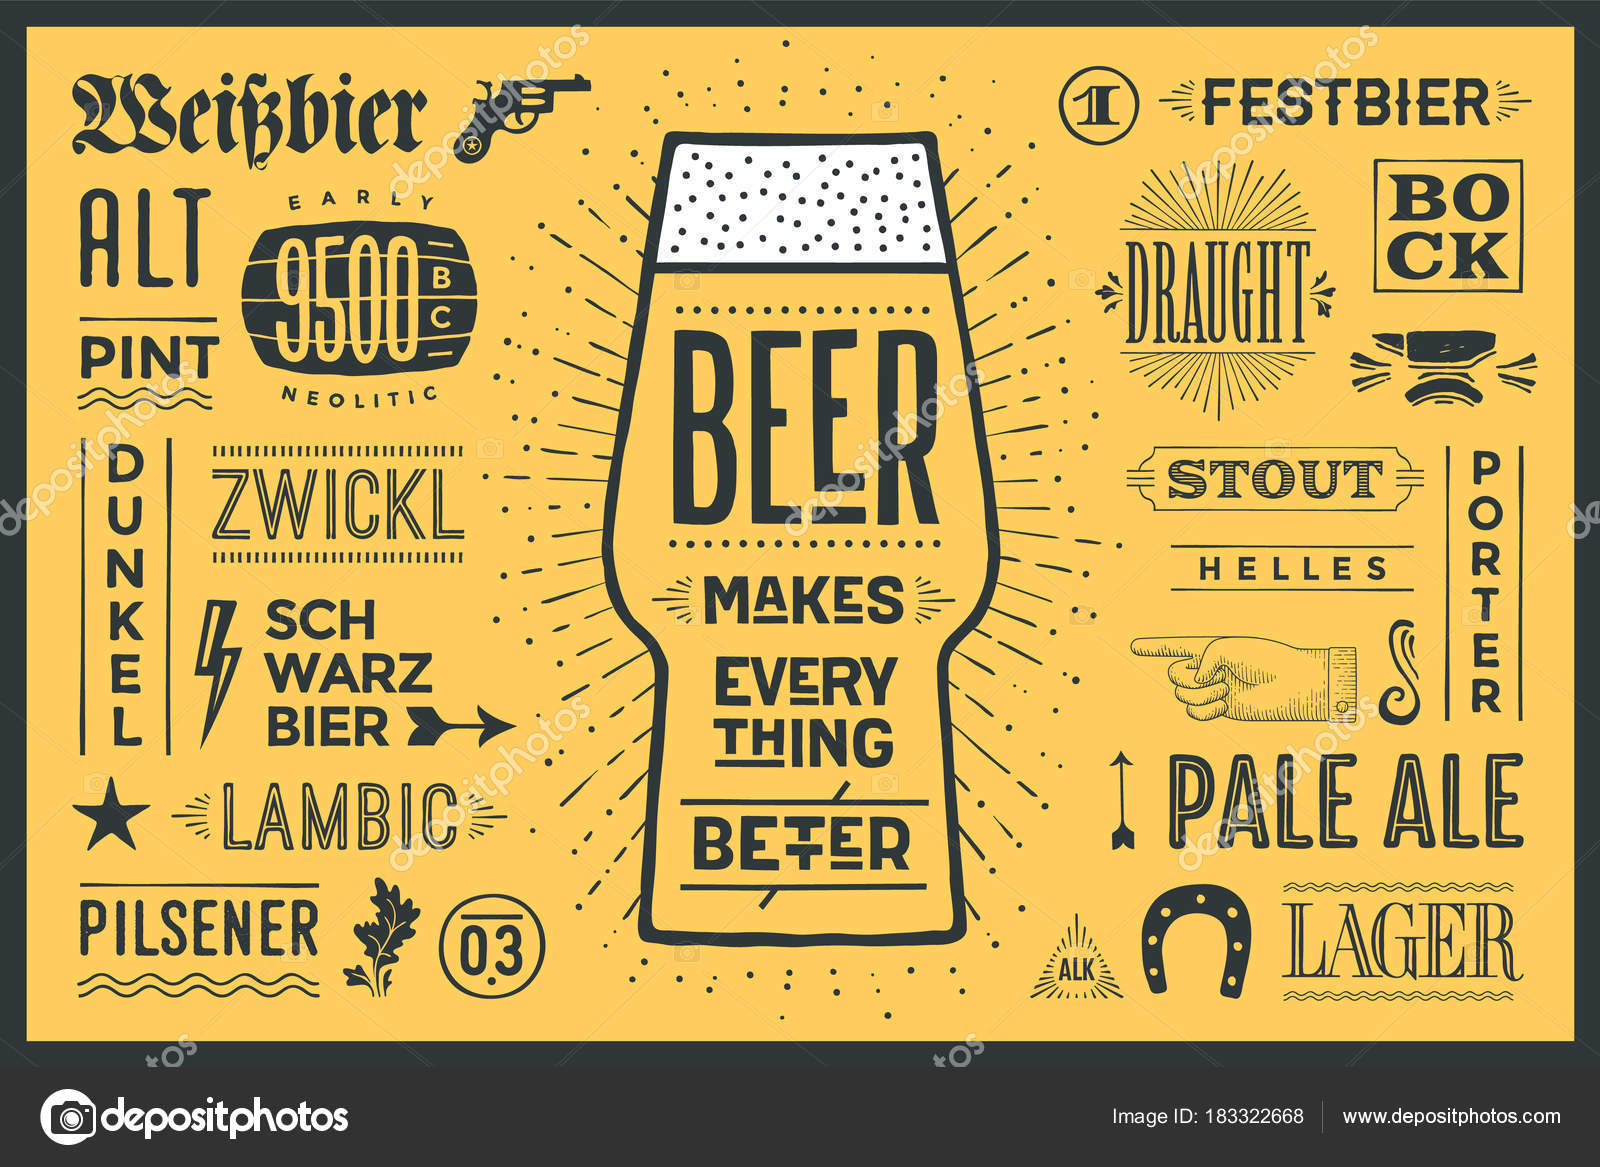 poster banner text beer makes everything better names types beer